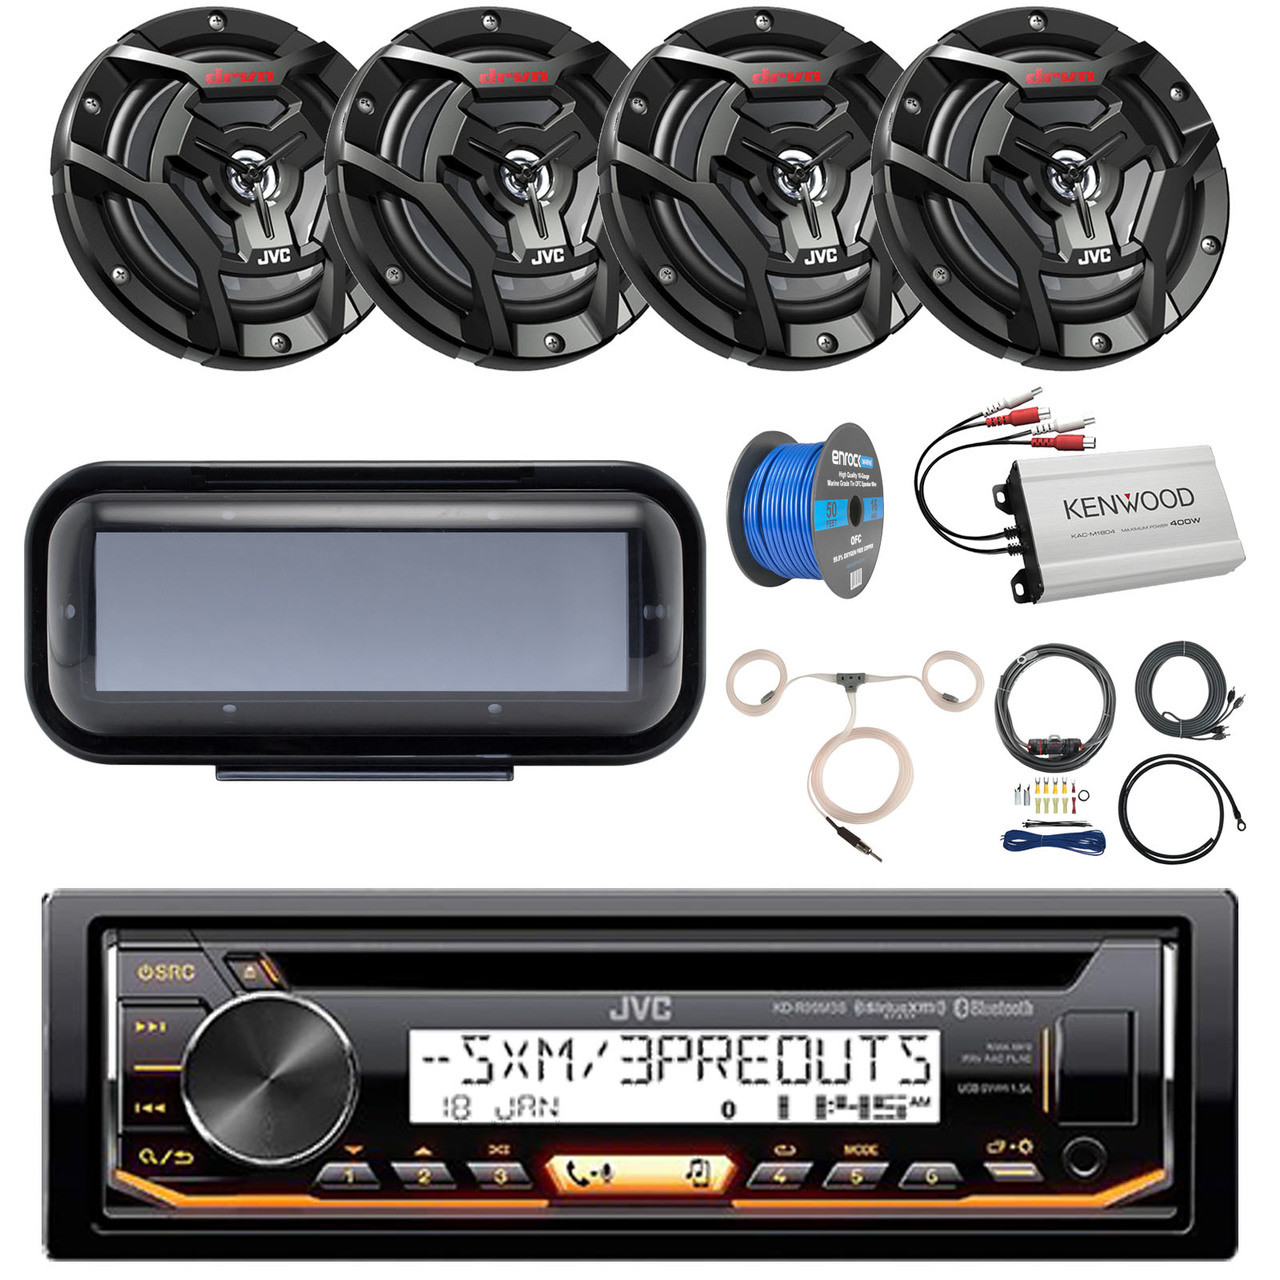 pontoon boat audio package jvc kd r99mbs marine bluetooth cd receiver radio cover [ 1280 x 1280 Pixel ]